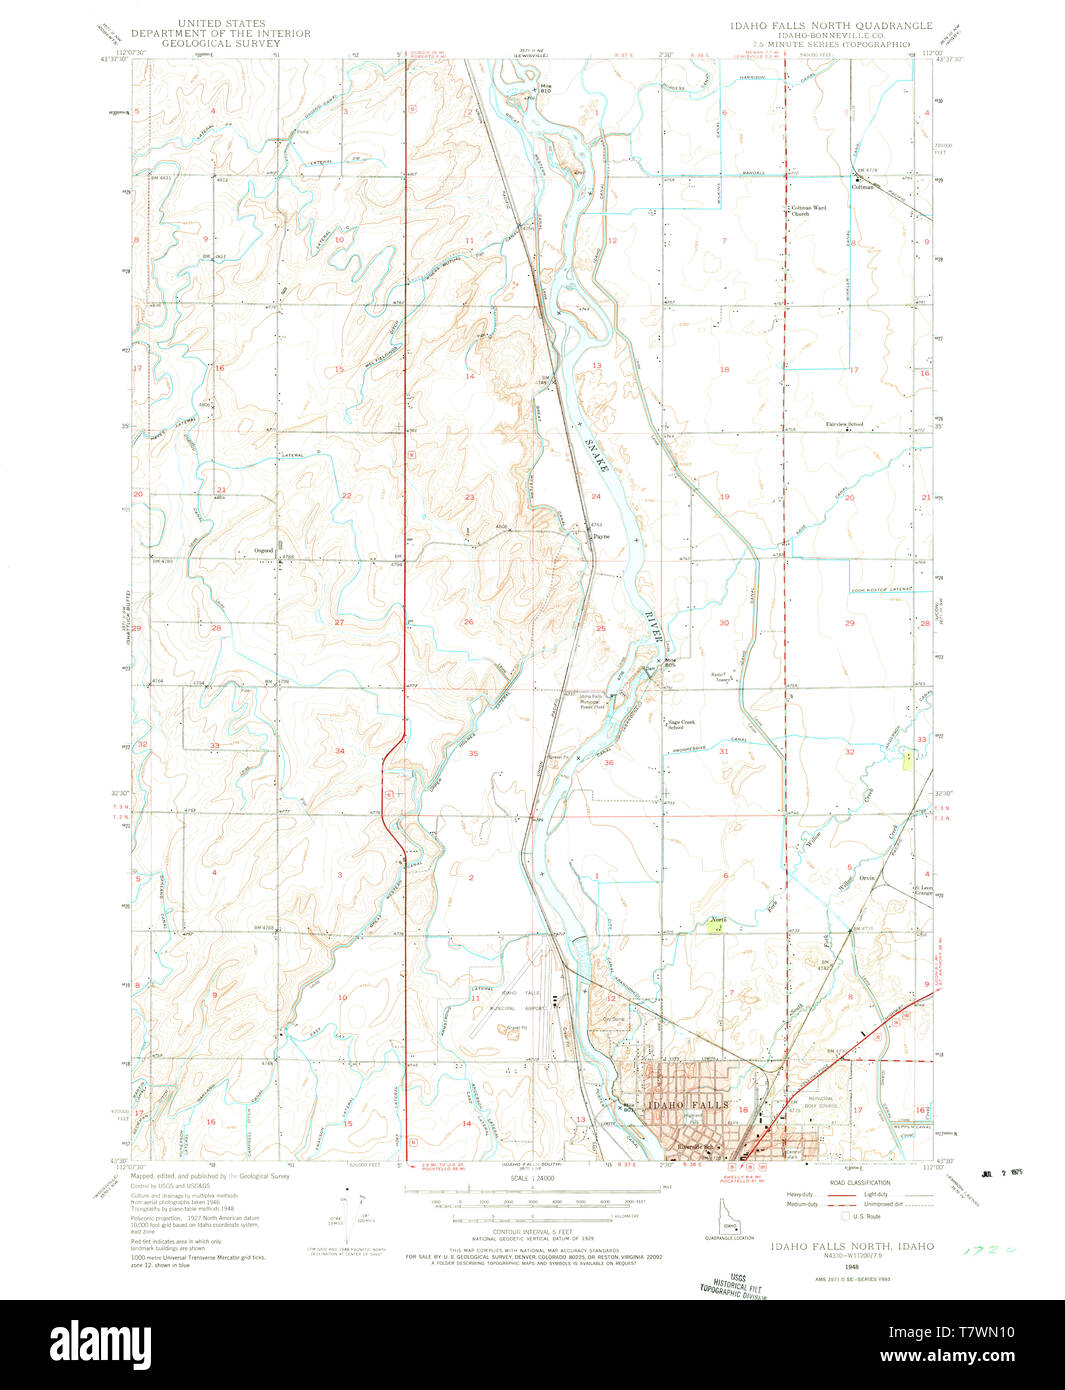 USGS TOPO Map Idaho ID Idaho Falls North 236616 1948 24000 ... Idaho Falls Map on wood river valley map, city of rocks national reserve map, butte map, missoula map, boise map, atomic city map, lake pend oreille map, idaho lakes and reservoirs map, shoshone idaho map, hot springs idaho map, pocatello map, riggins map, donnelly id map, sun valley idaho map, west yellowstone idaho map, hells canyon wilderness map, camas county map, twin falls id map, southeast idaho map, snake river idaho map,